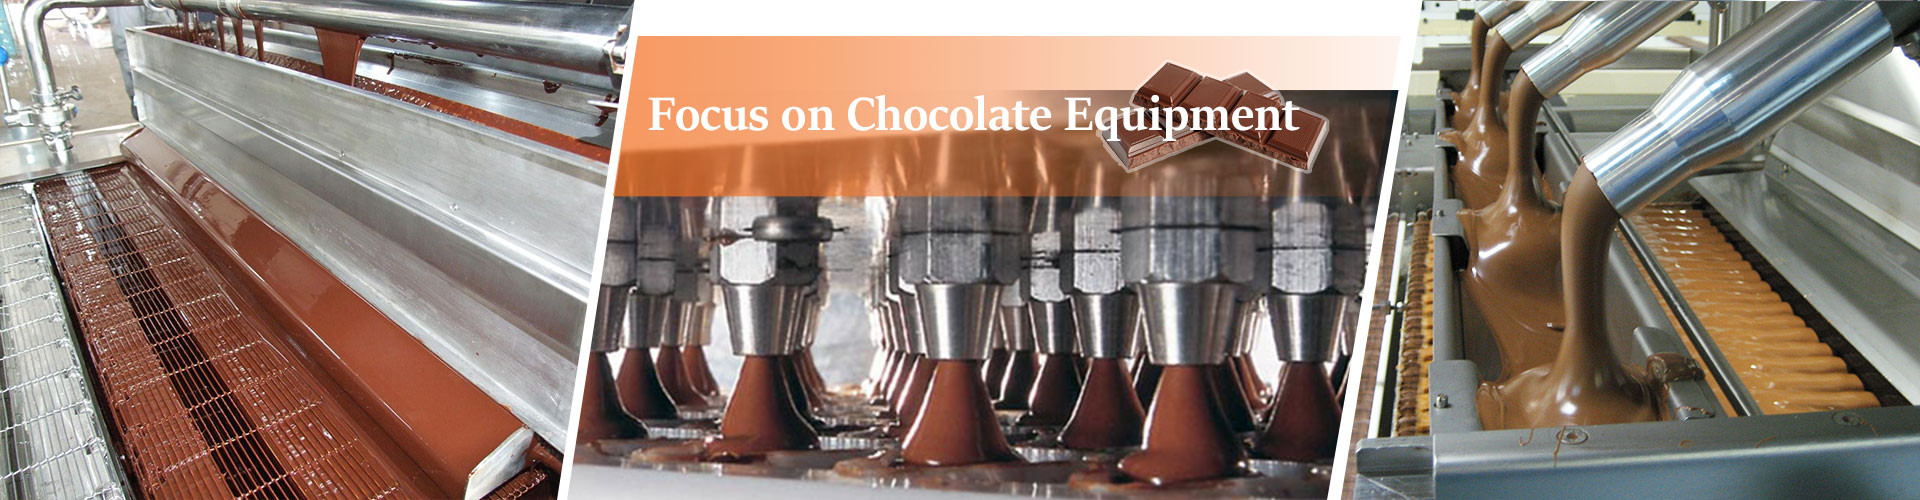 Chocolate Machinery